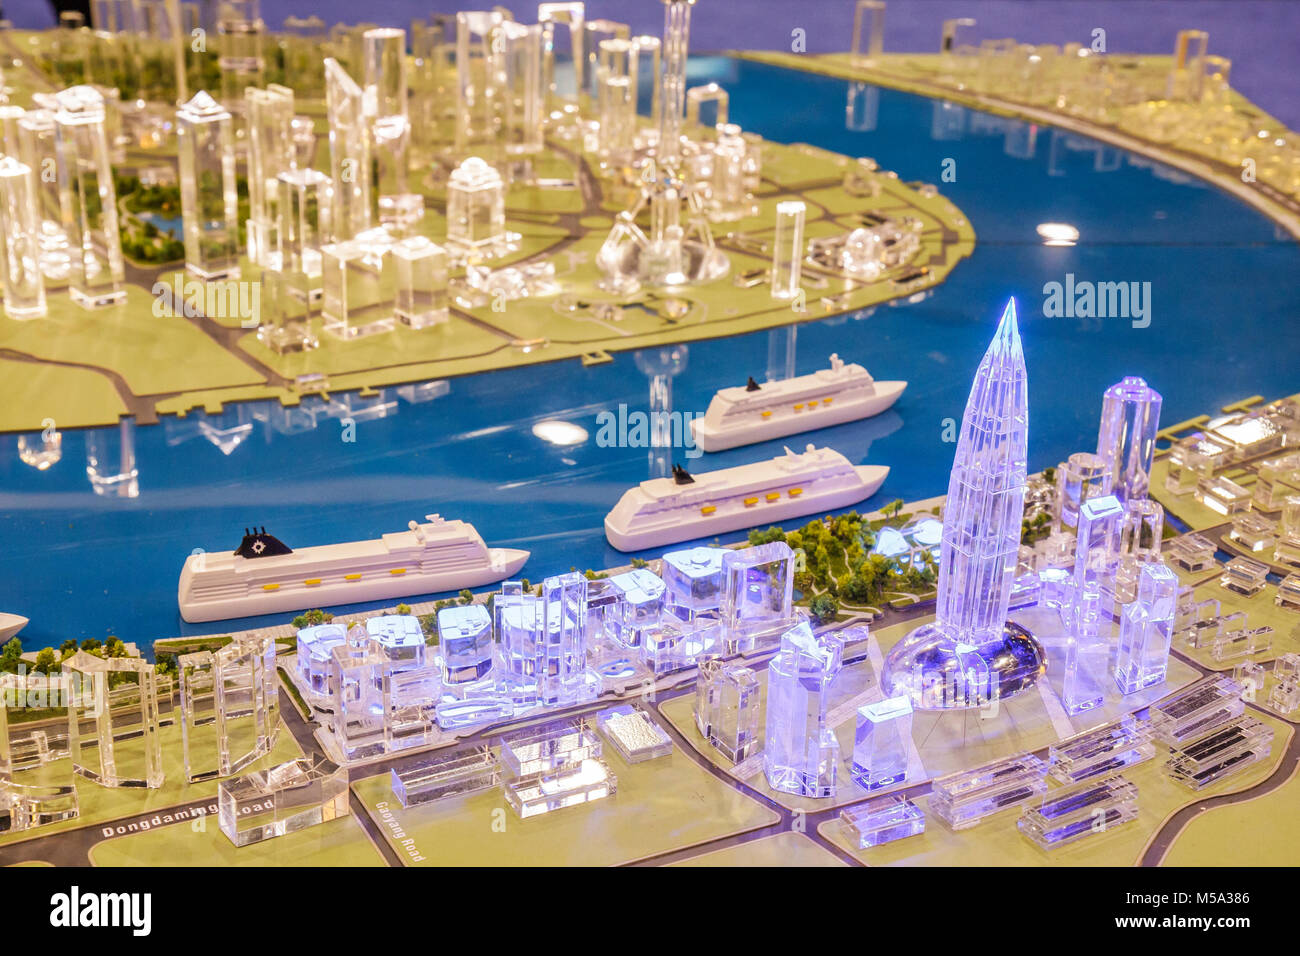 promotion suppliers scale model Shanghai China port buildings plastic Stock Photo